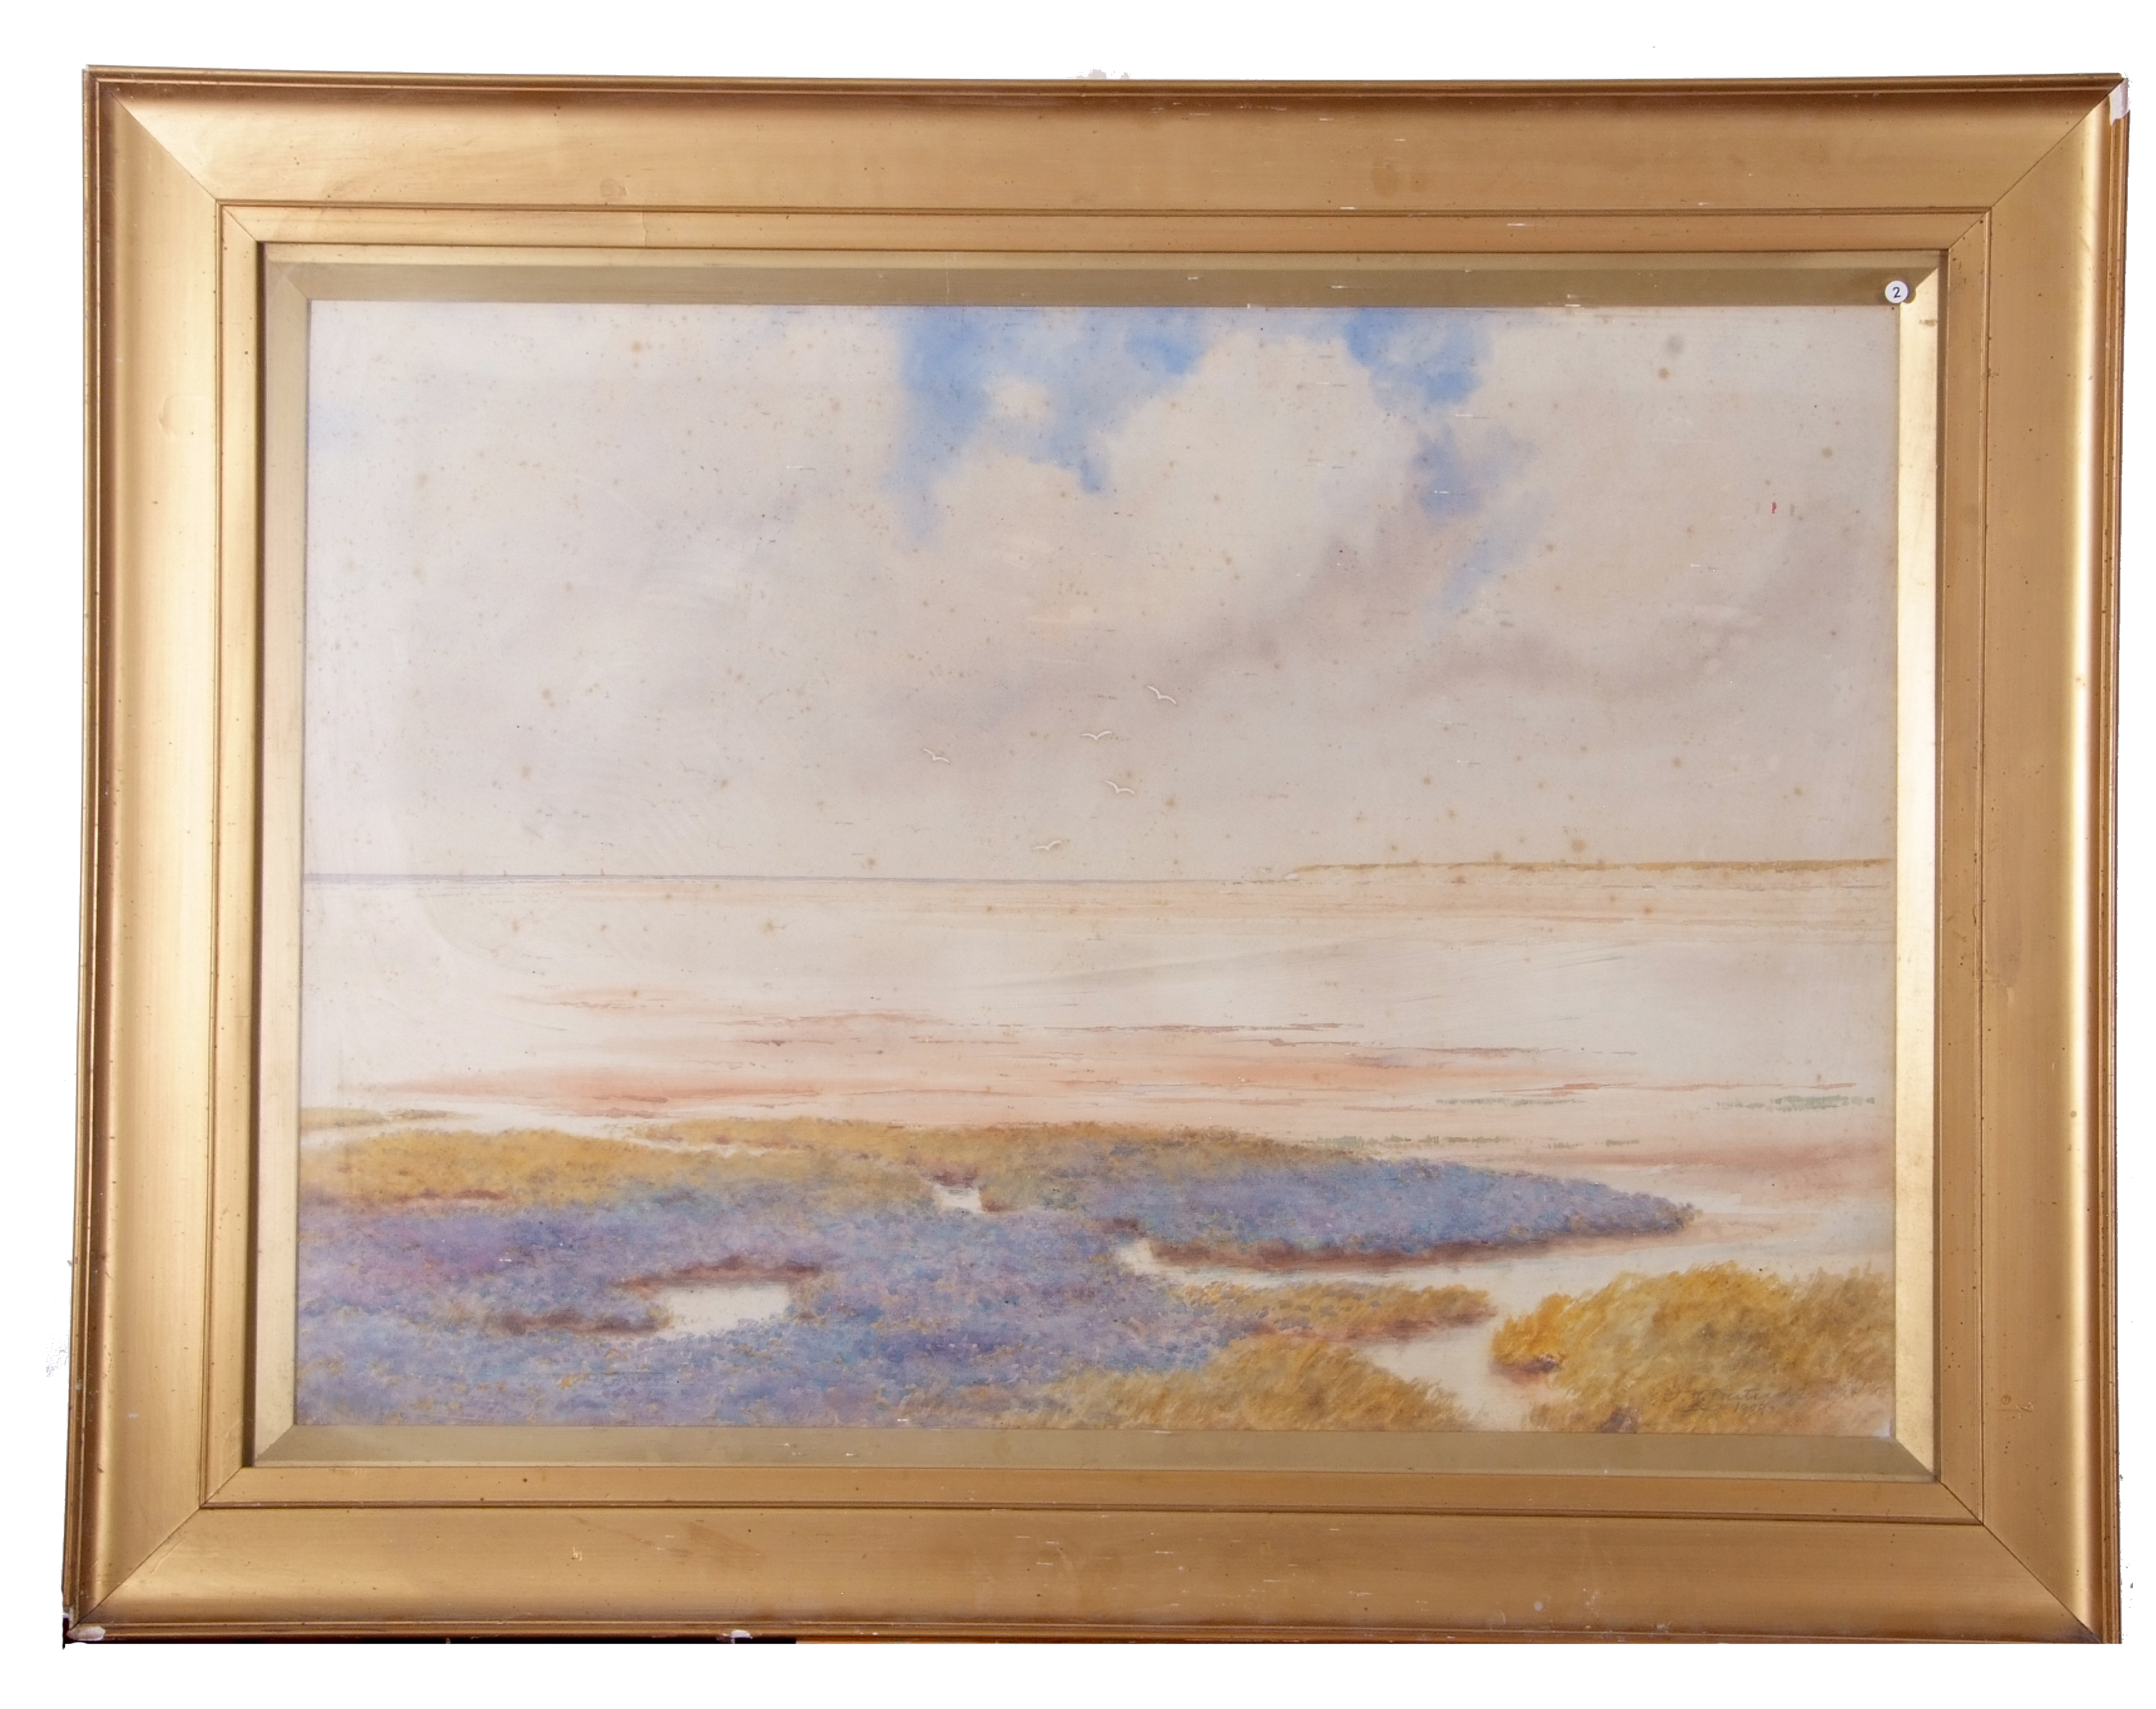 Large study of estuary scene with sea lavender in foreground, watercolour, indistinctly signed lower